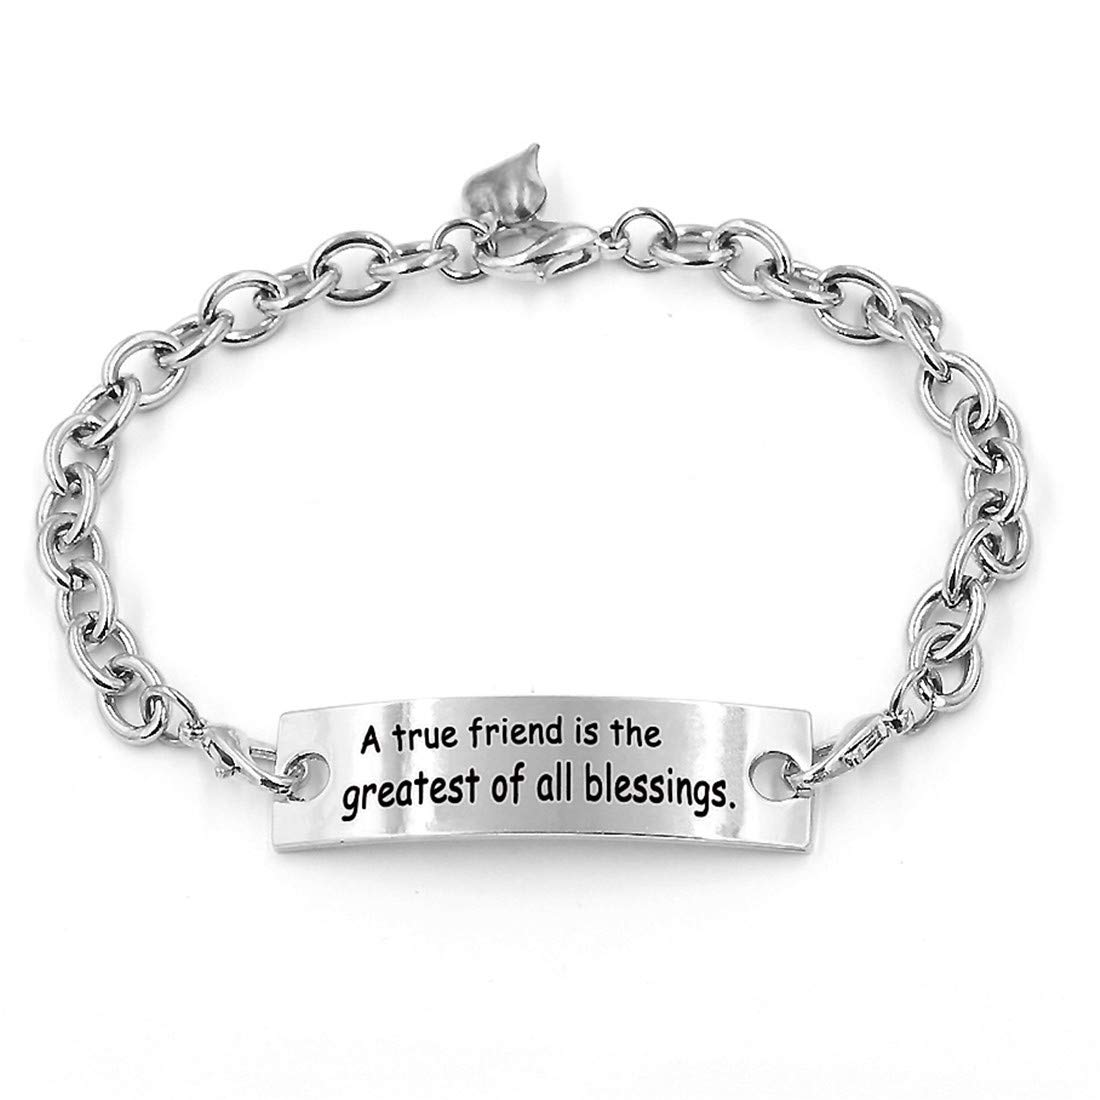 Positive Sayings Chain Inspirational Bracelets,Gifts for Women.